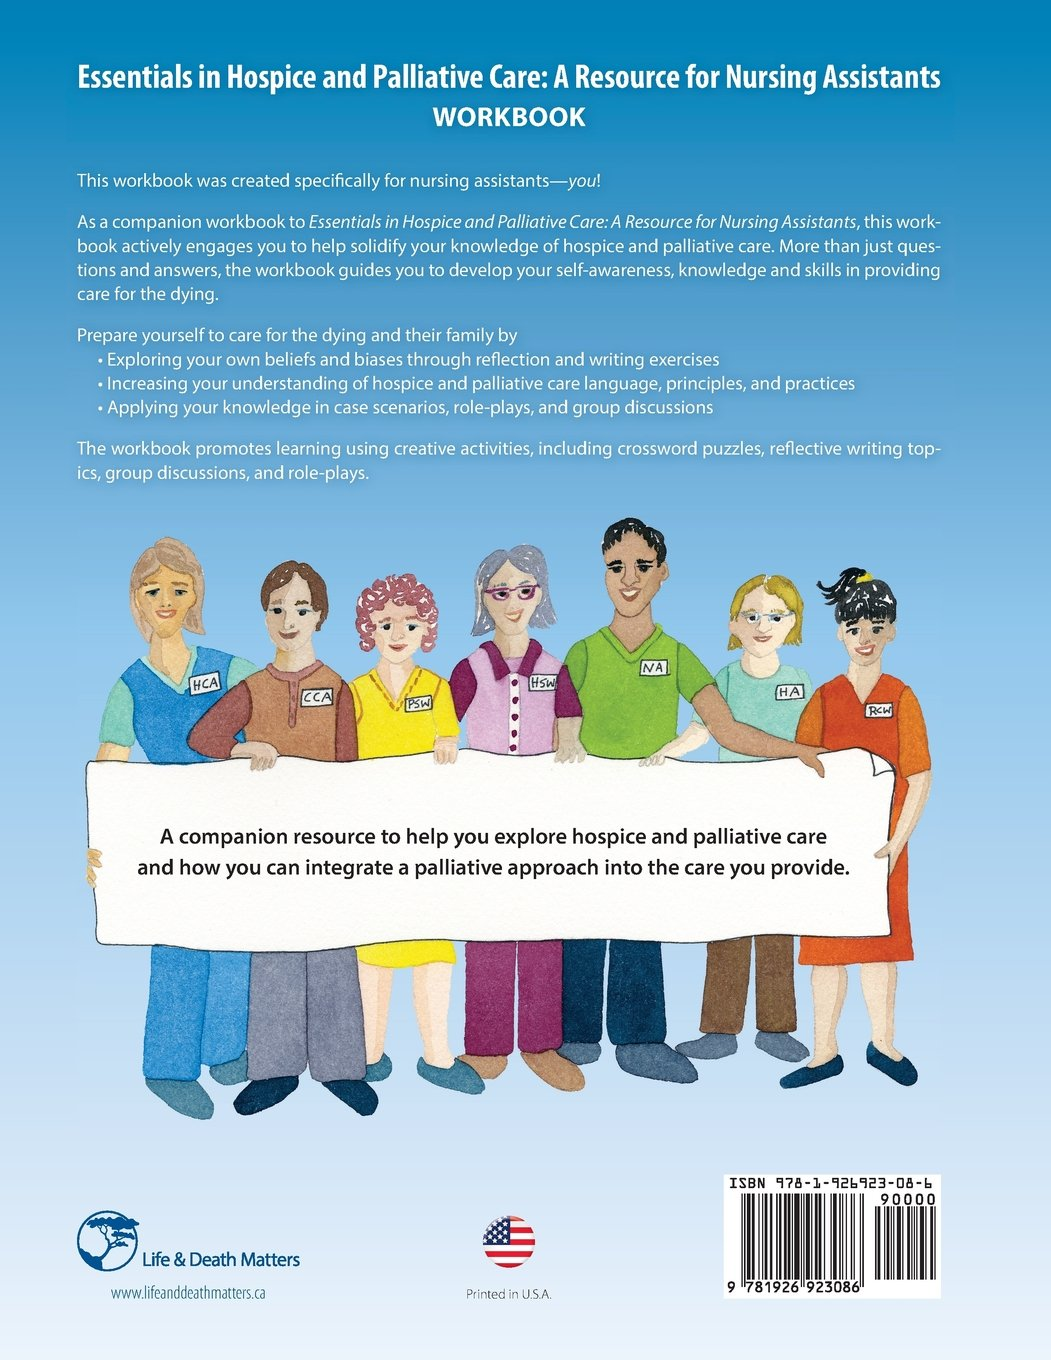 Essentials in Hospice and Palliative Care Workbook: A Resource for Nursing Assistants